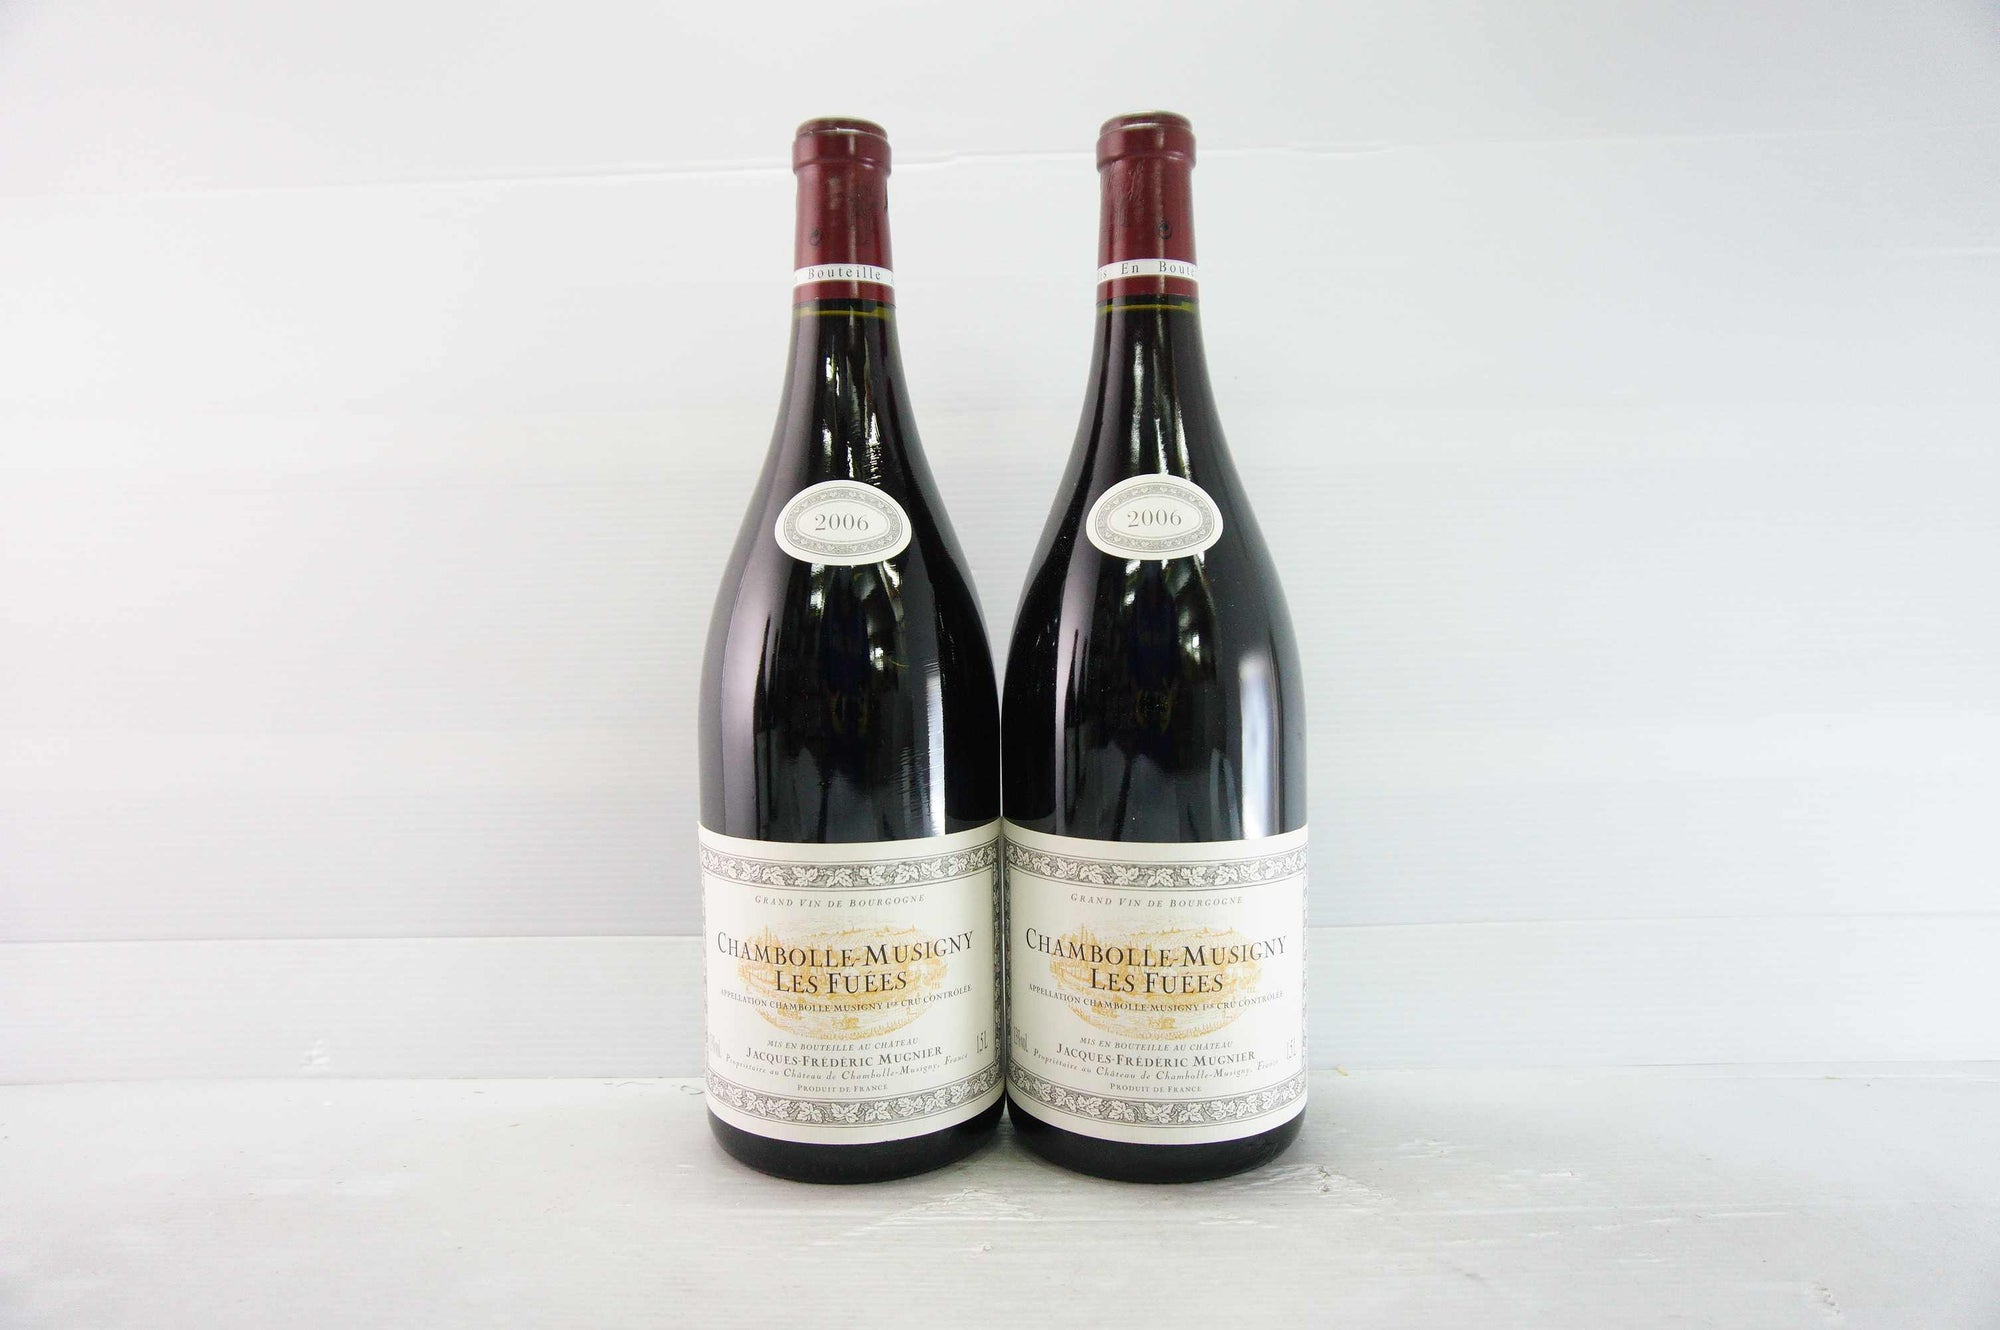 J.F. Mugnier Chambolle Musigny Les Fuees 1er Cru Magnum 2006